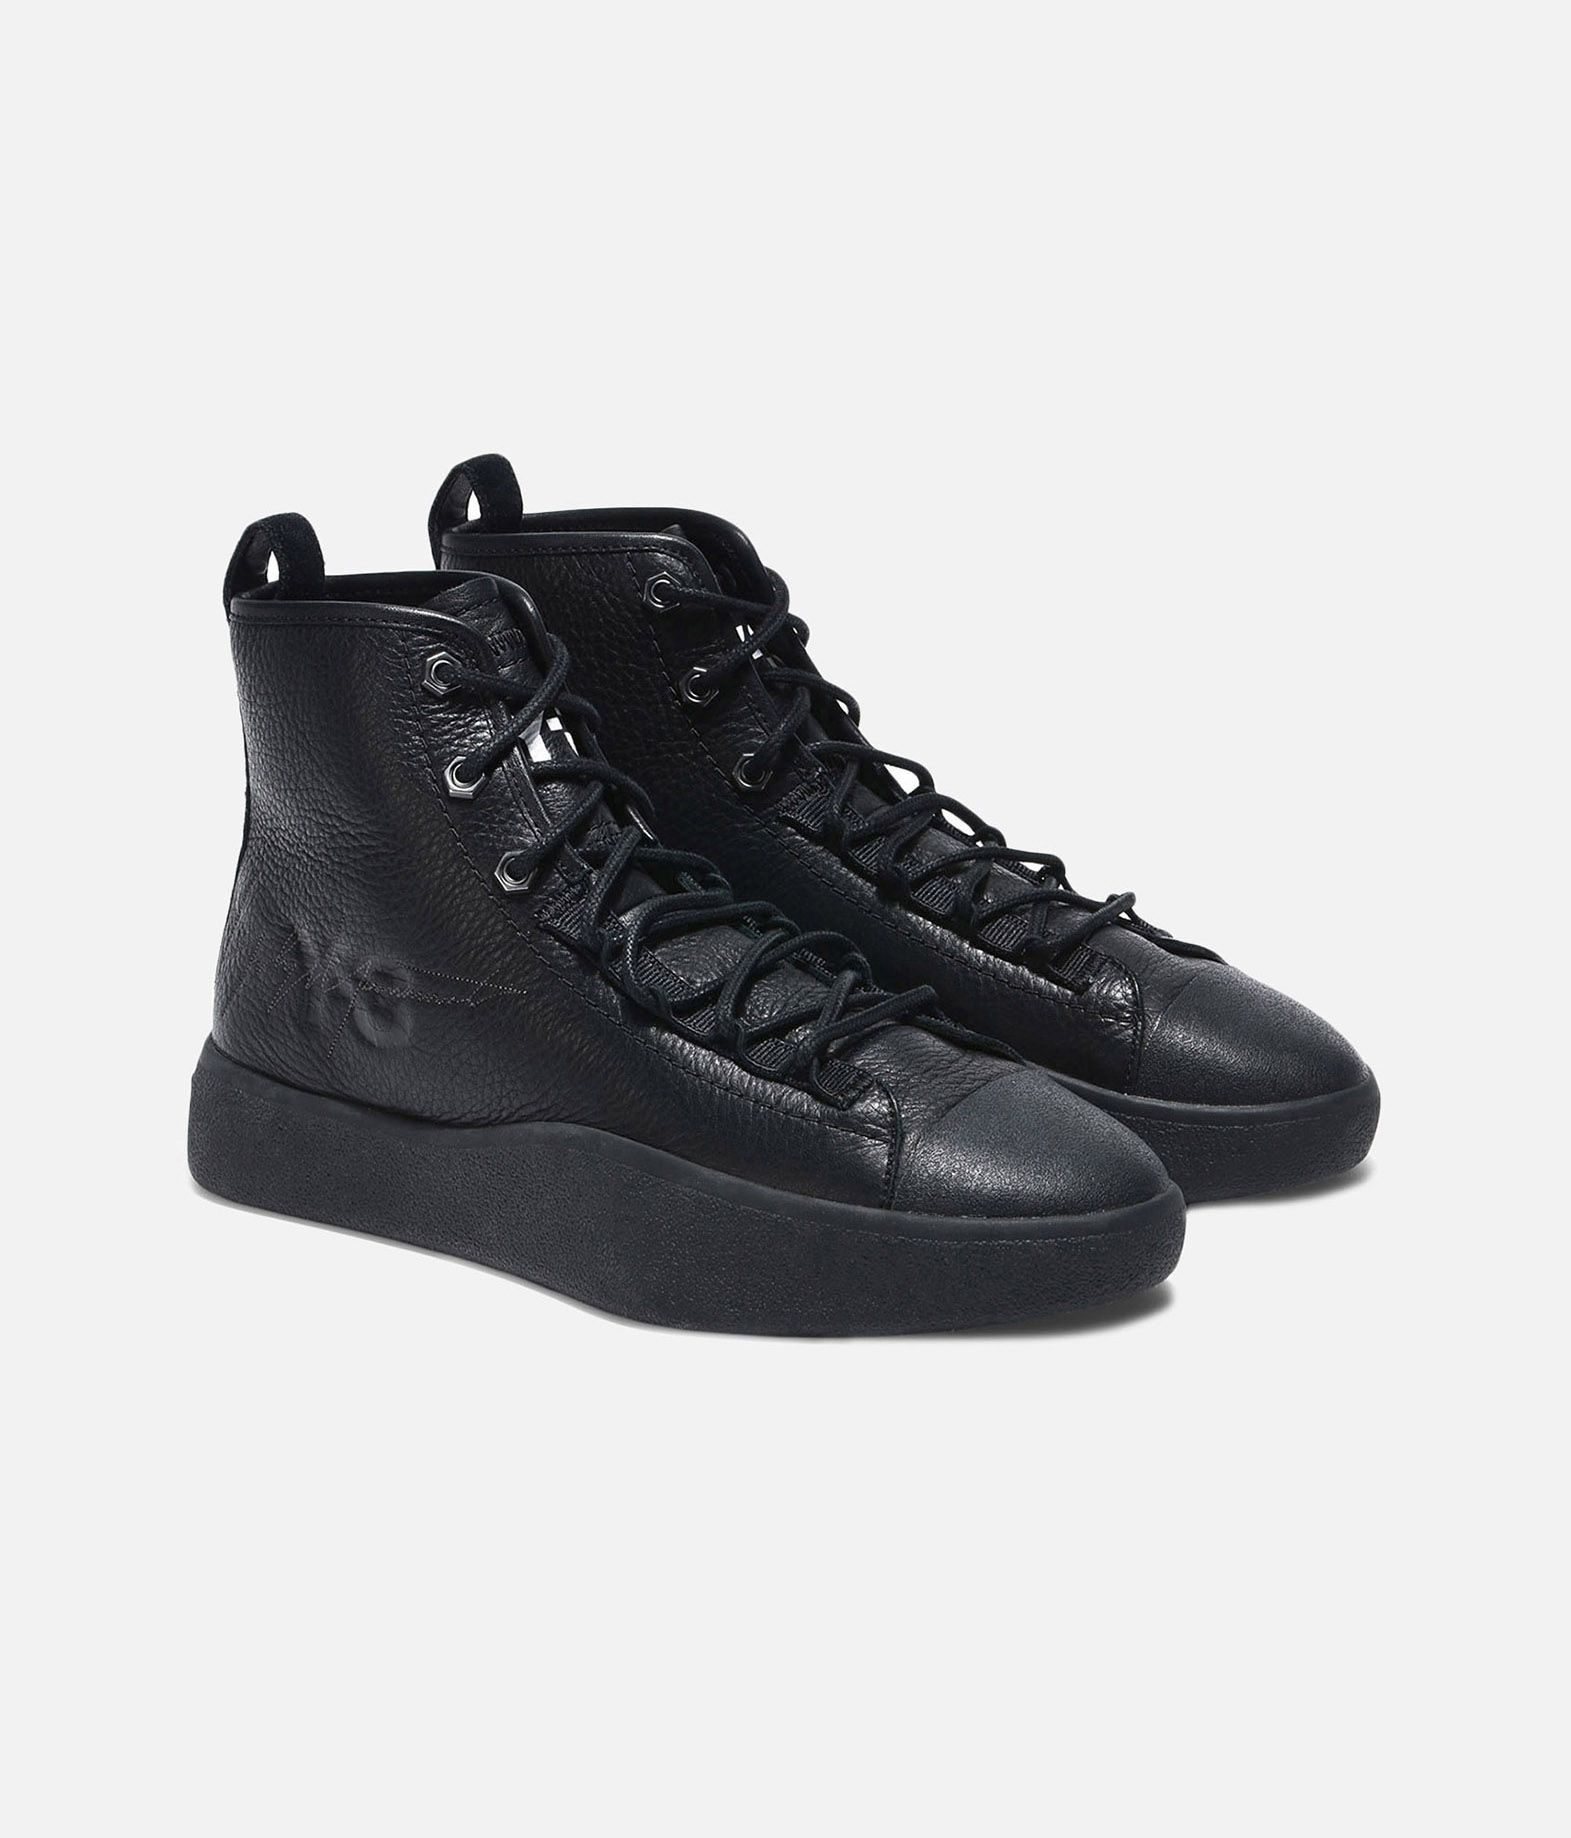 61e1365f4c5a2 ... Y-3 Y-3 Bashyo II High-top sneakers E r ...